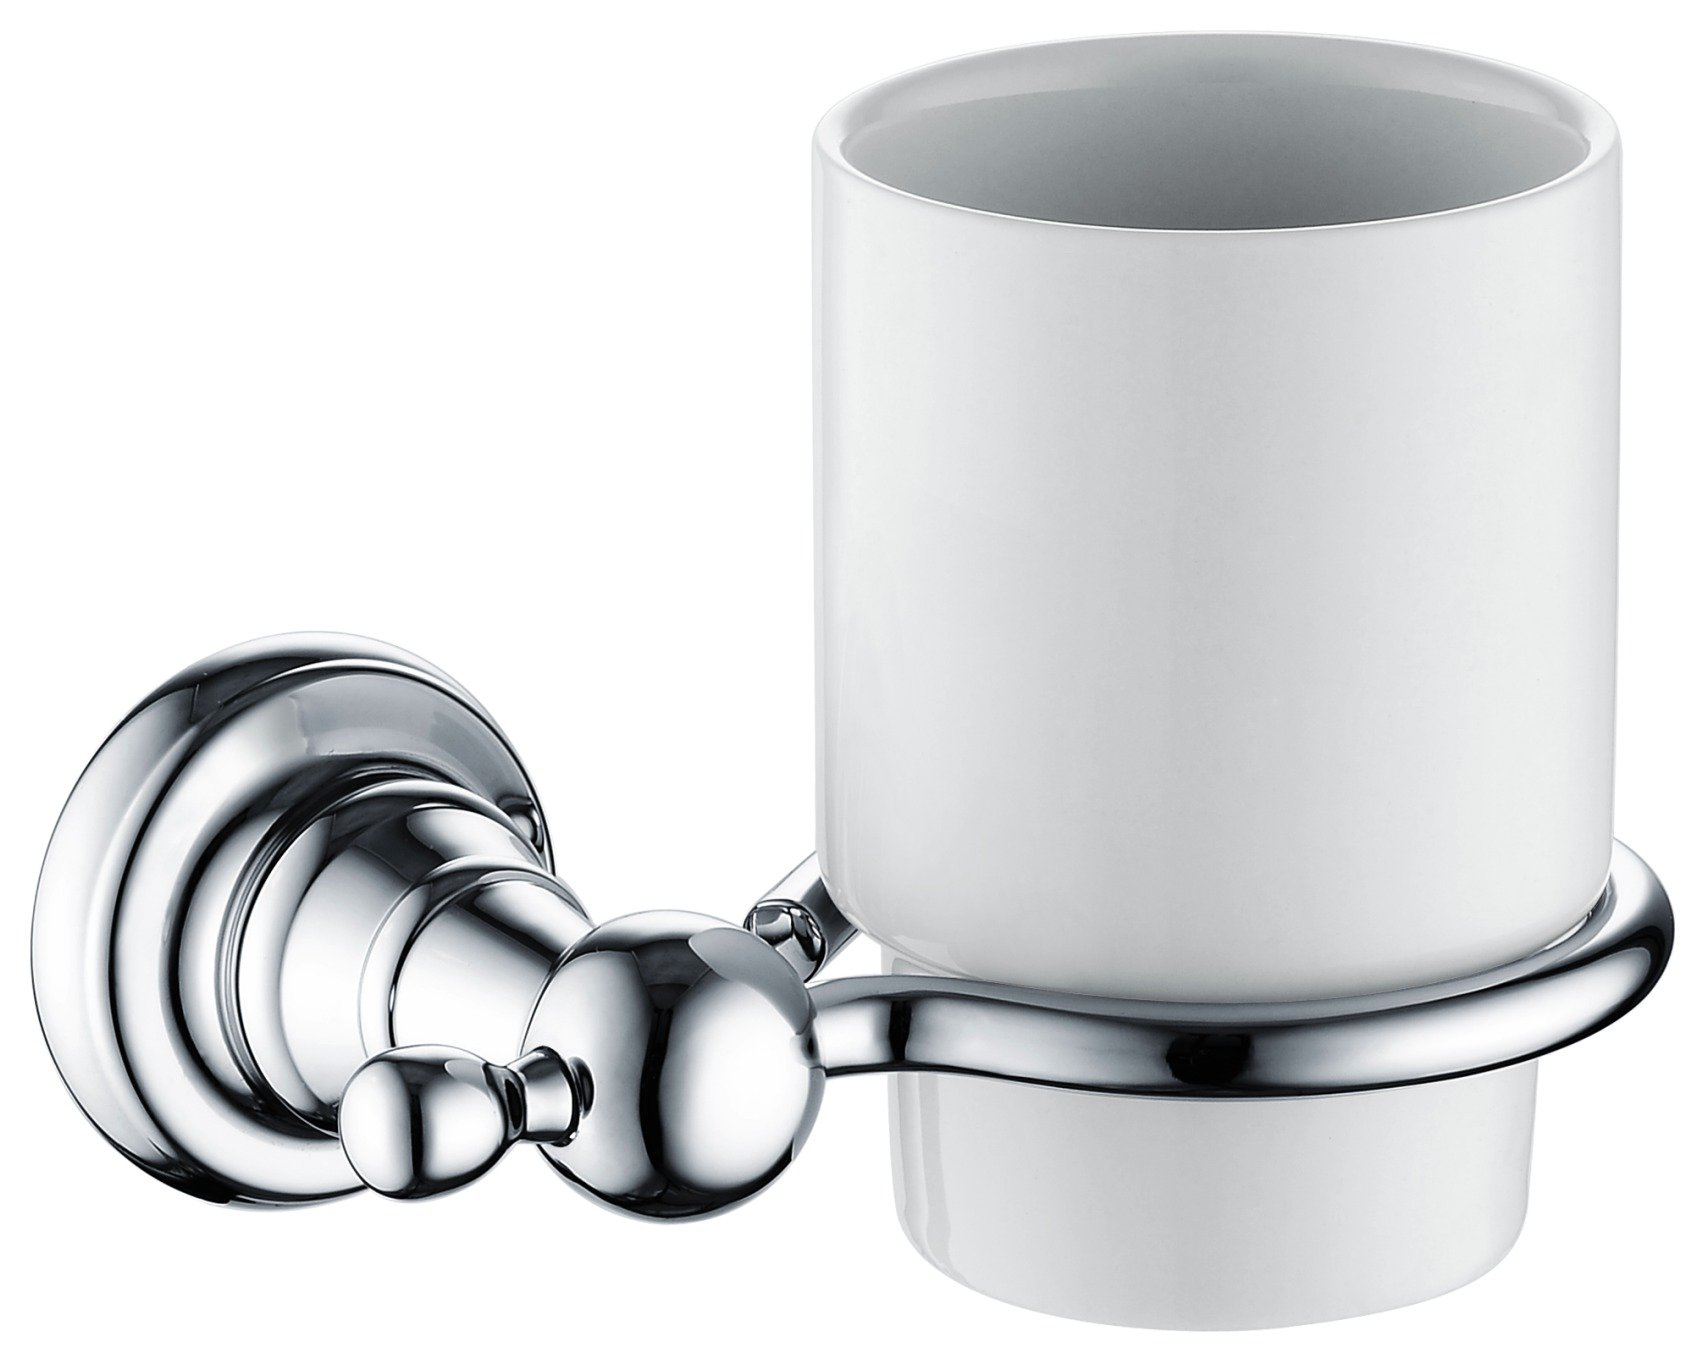 Image of Bristan 1901 Tumbler and Holder - Chrome.